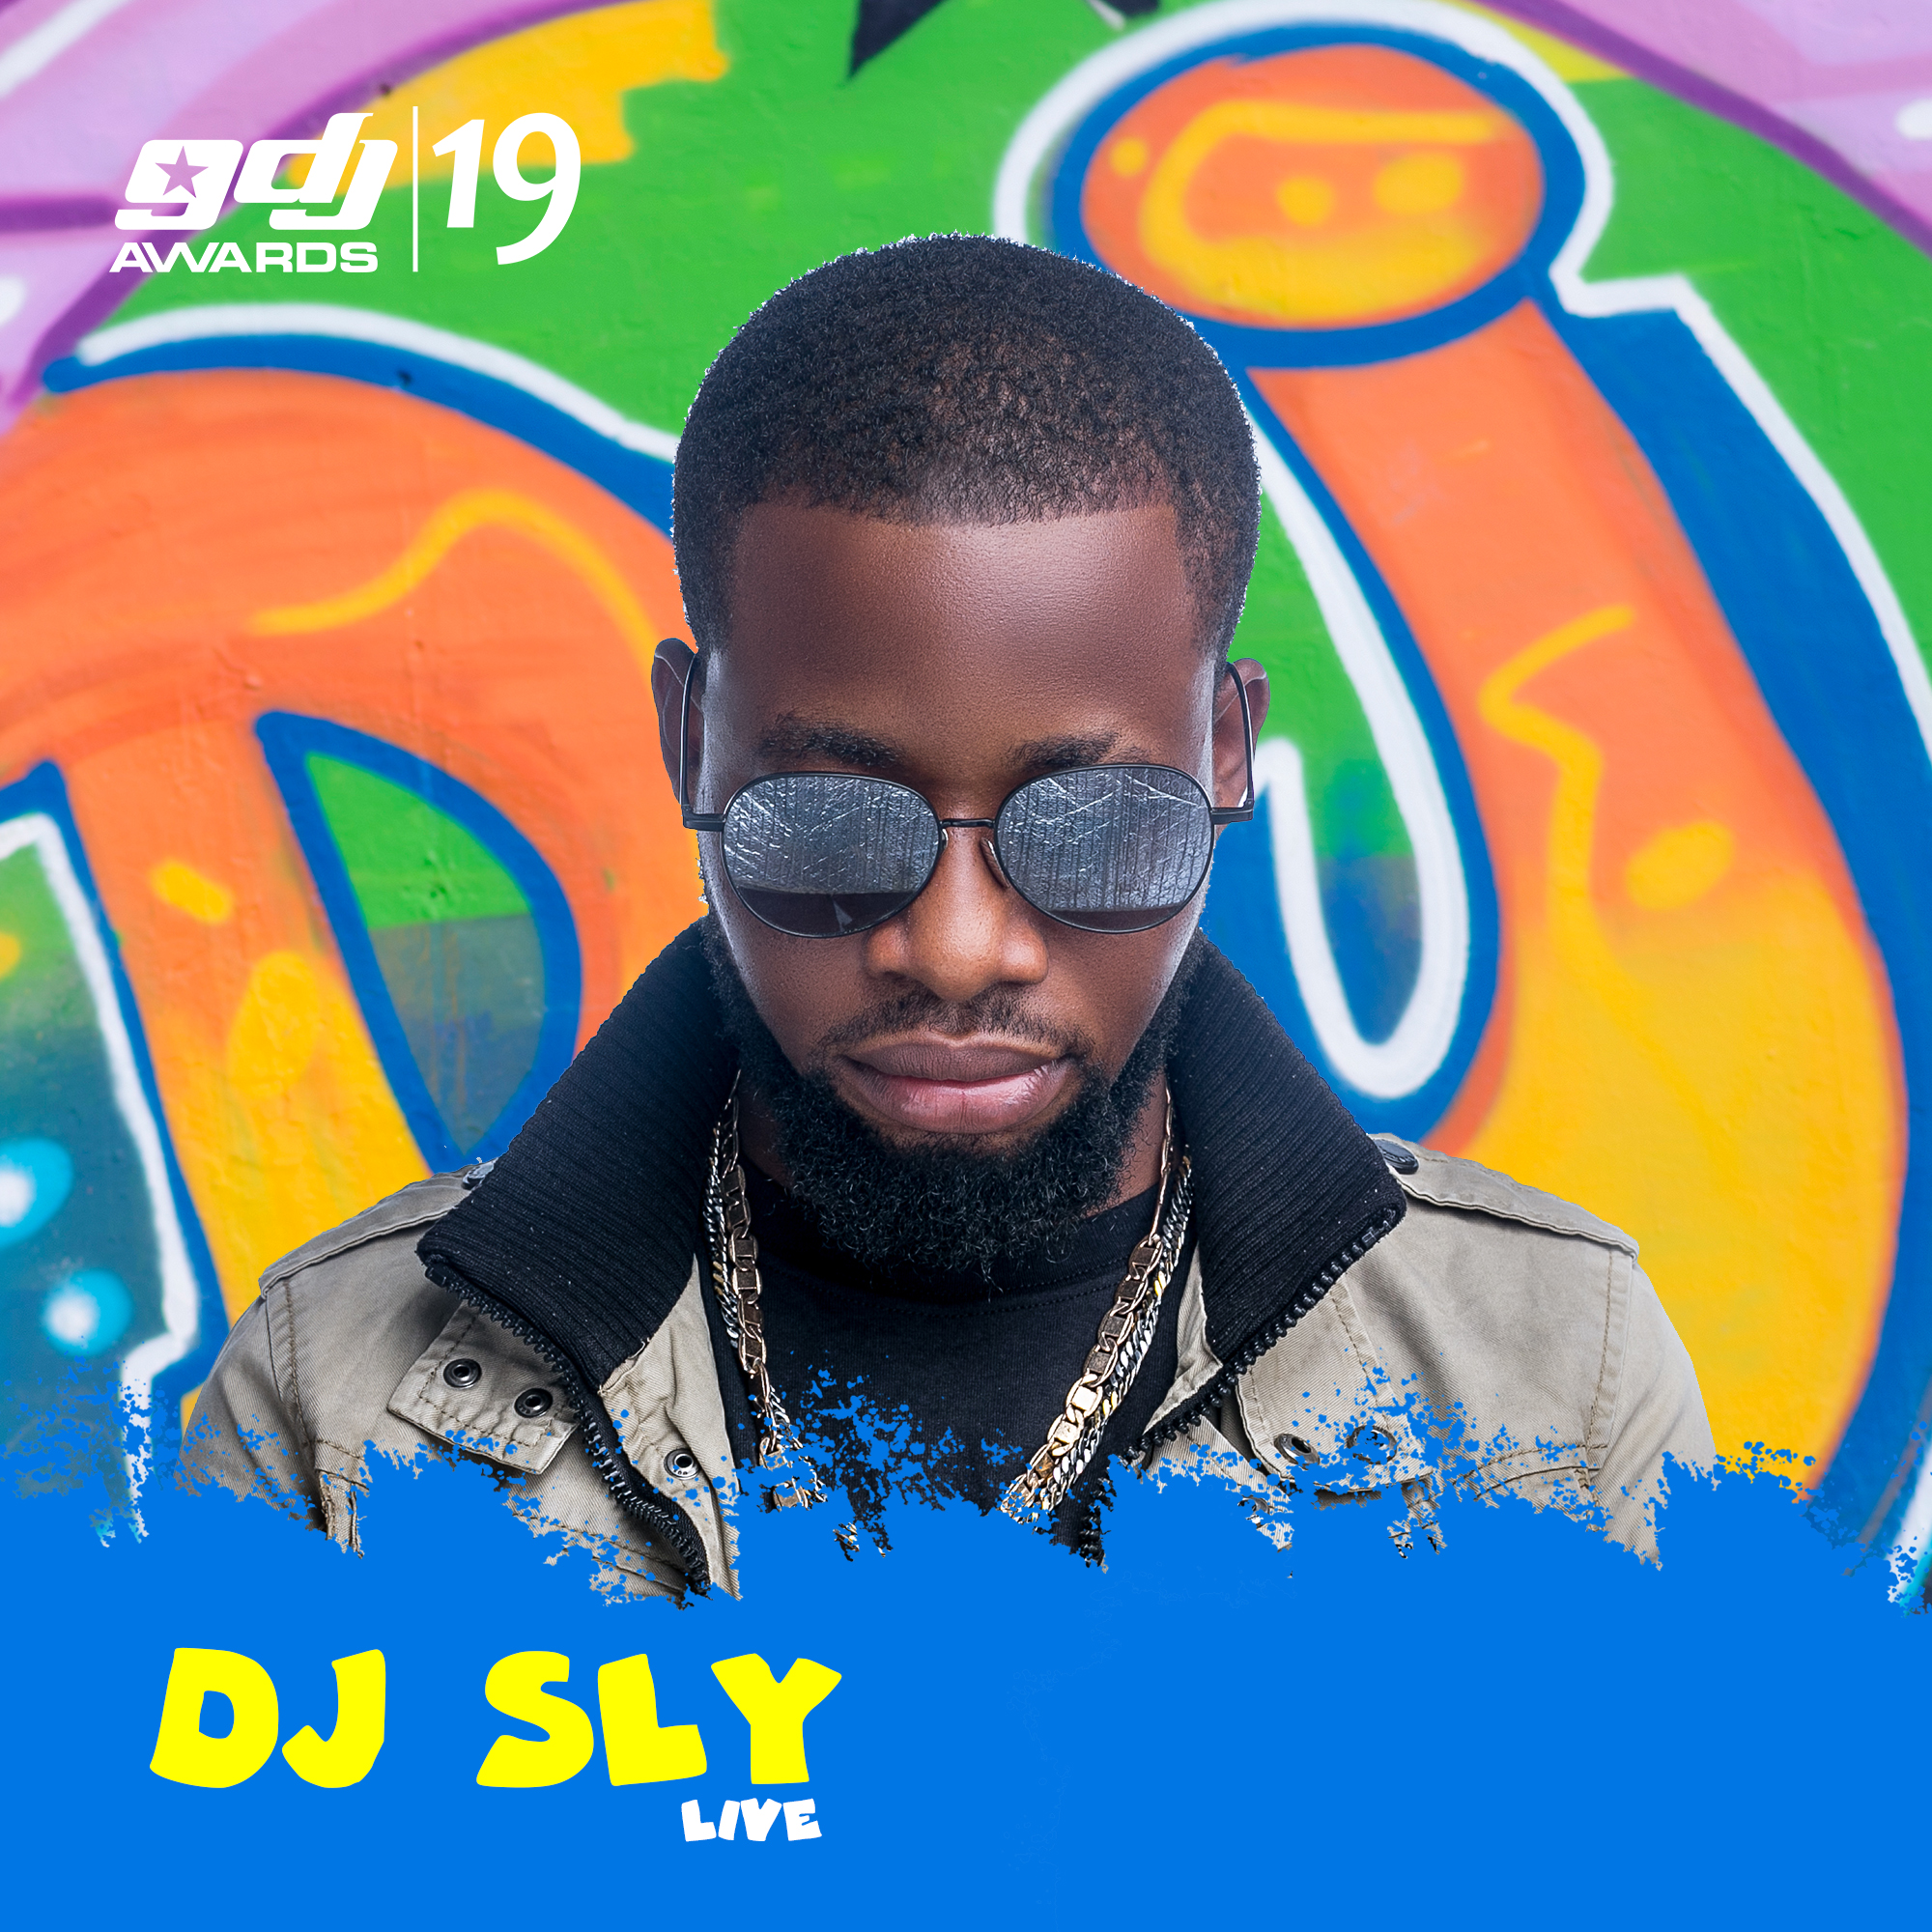 DJ Sly - ghanadjawards.org